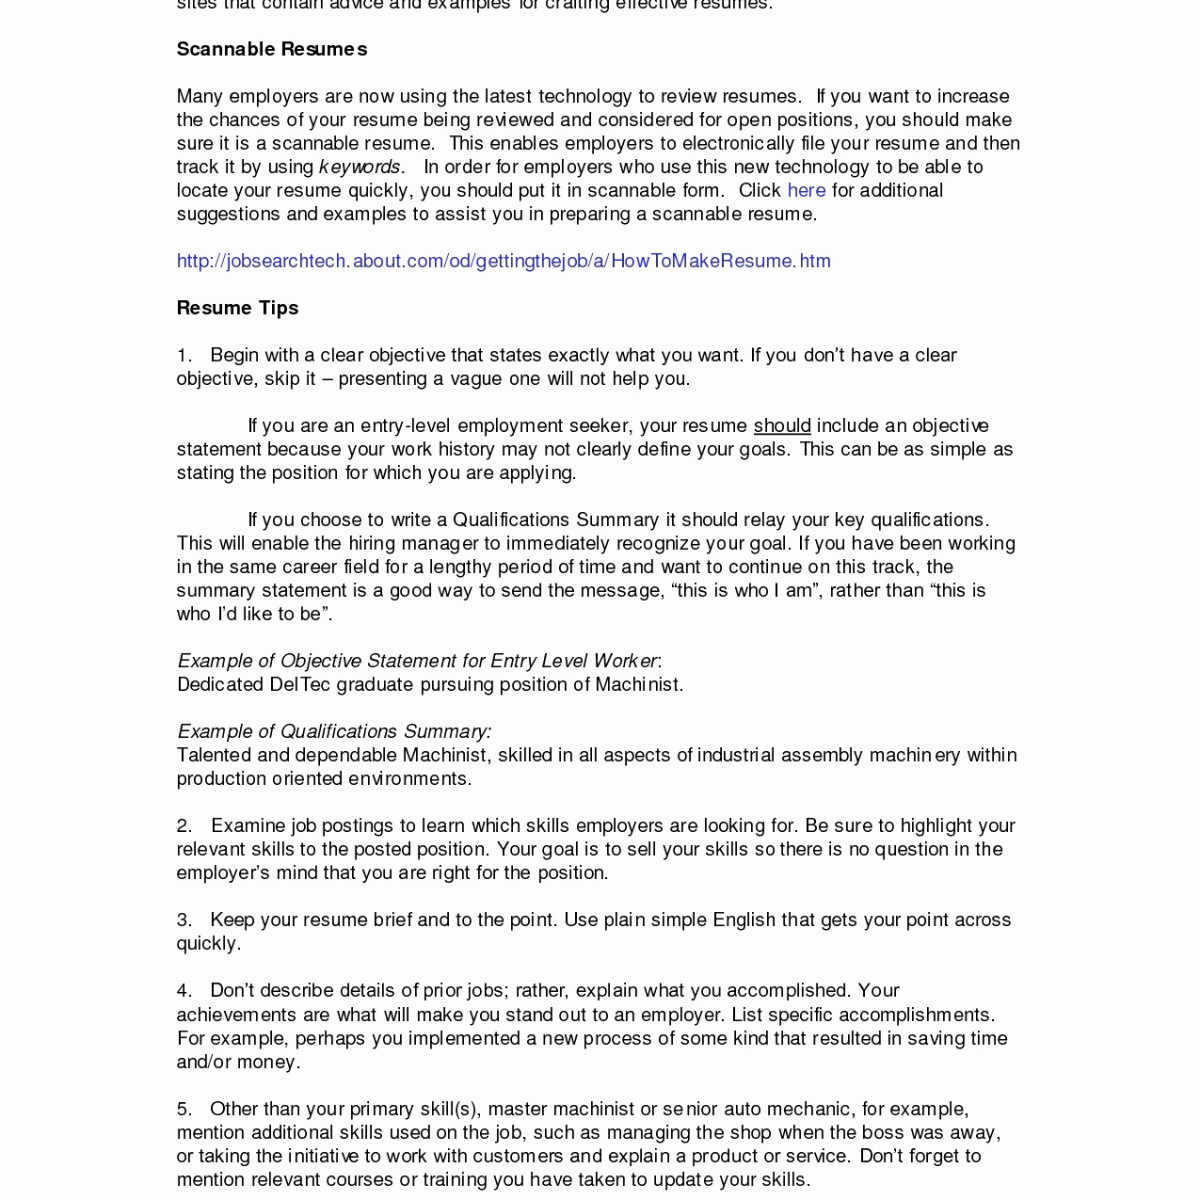 Executive Personal assistant Job Description Resume - Entry Level Healthcare Administration Resume Pretty Entry Level